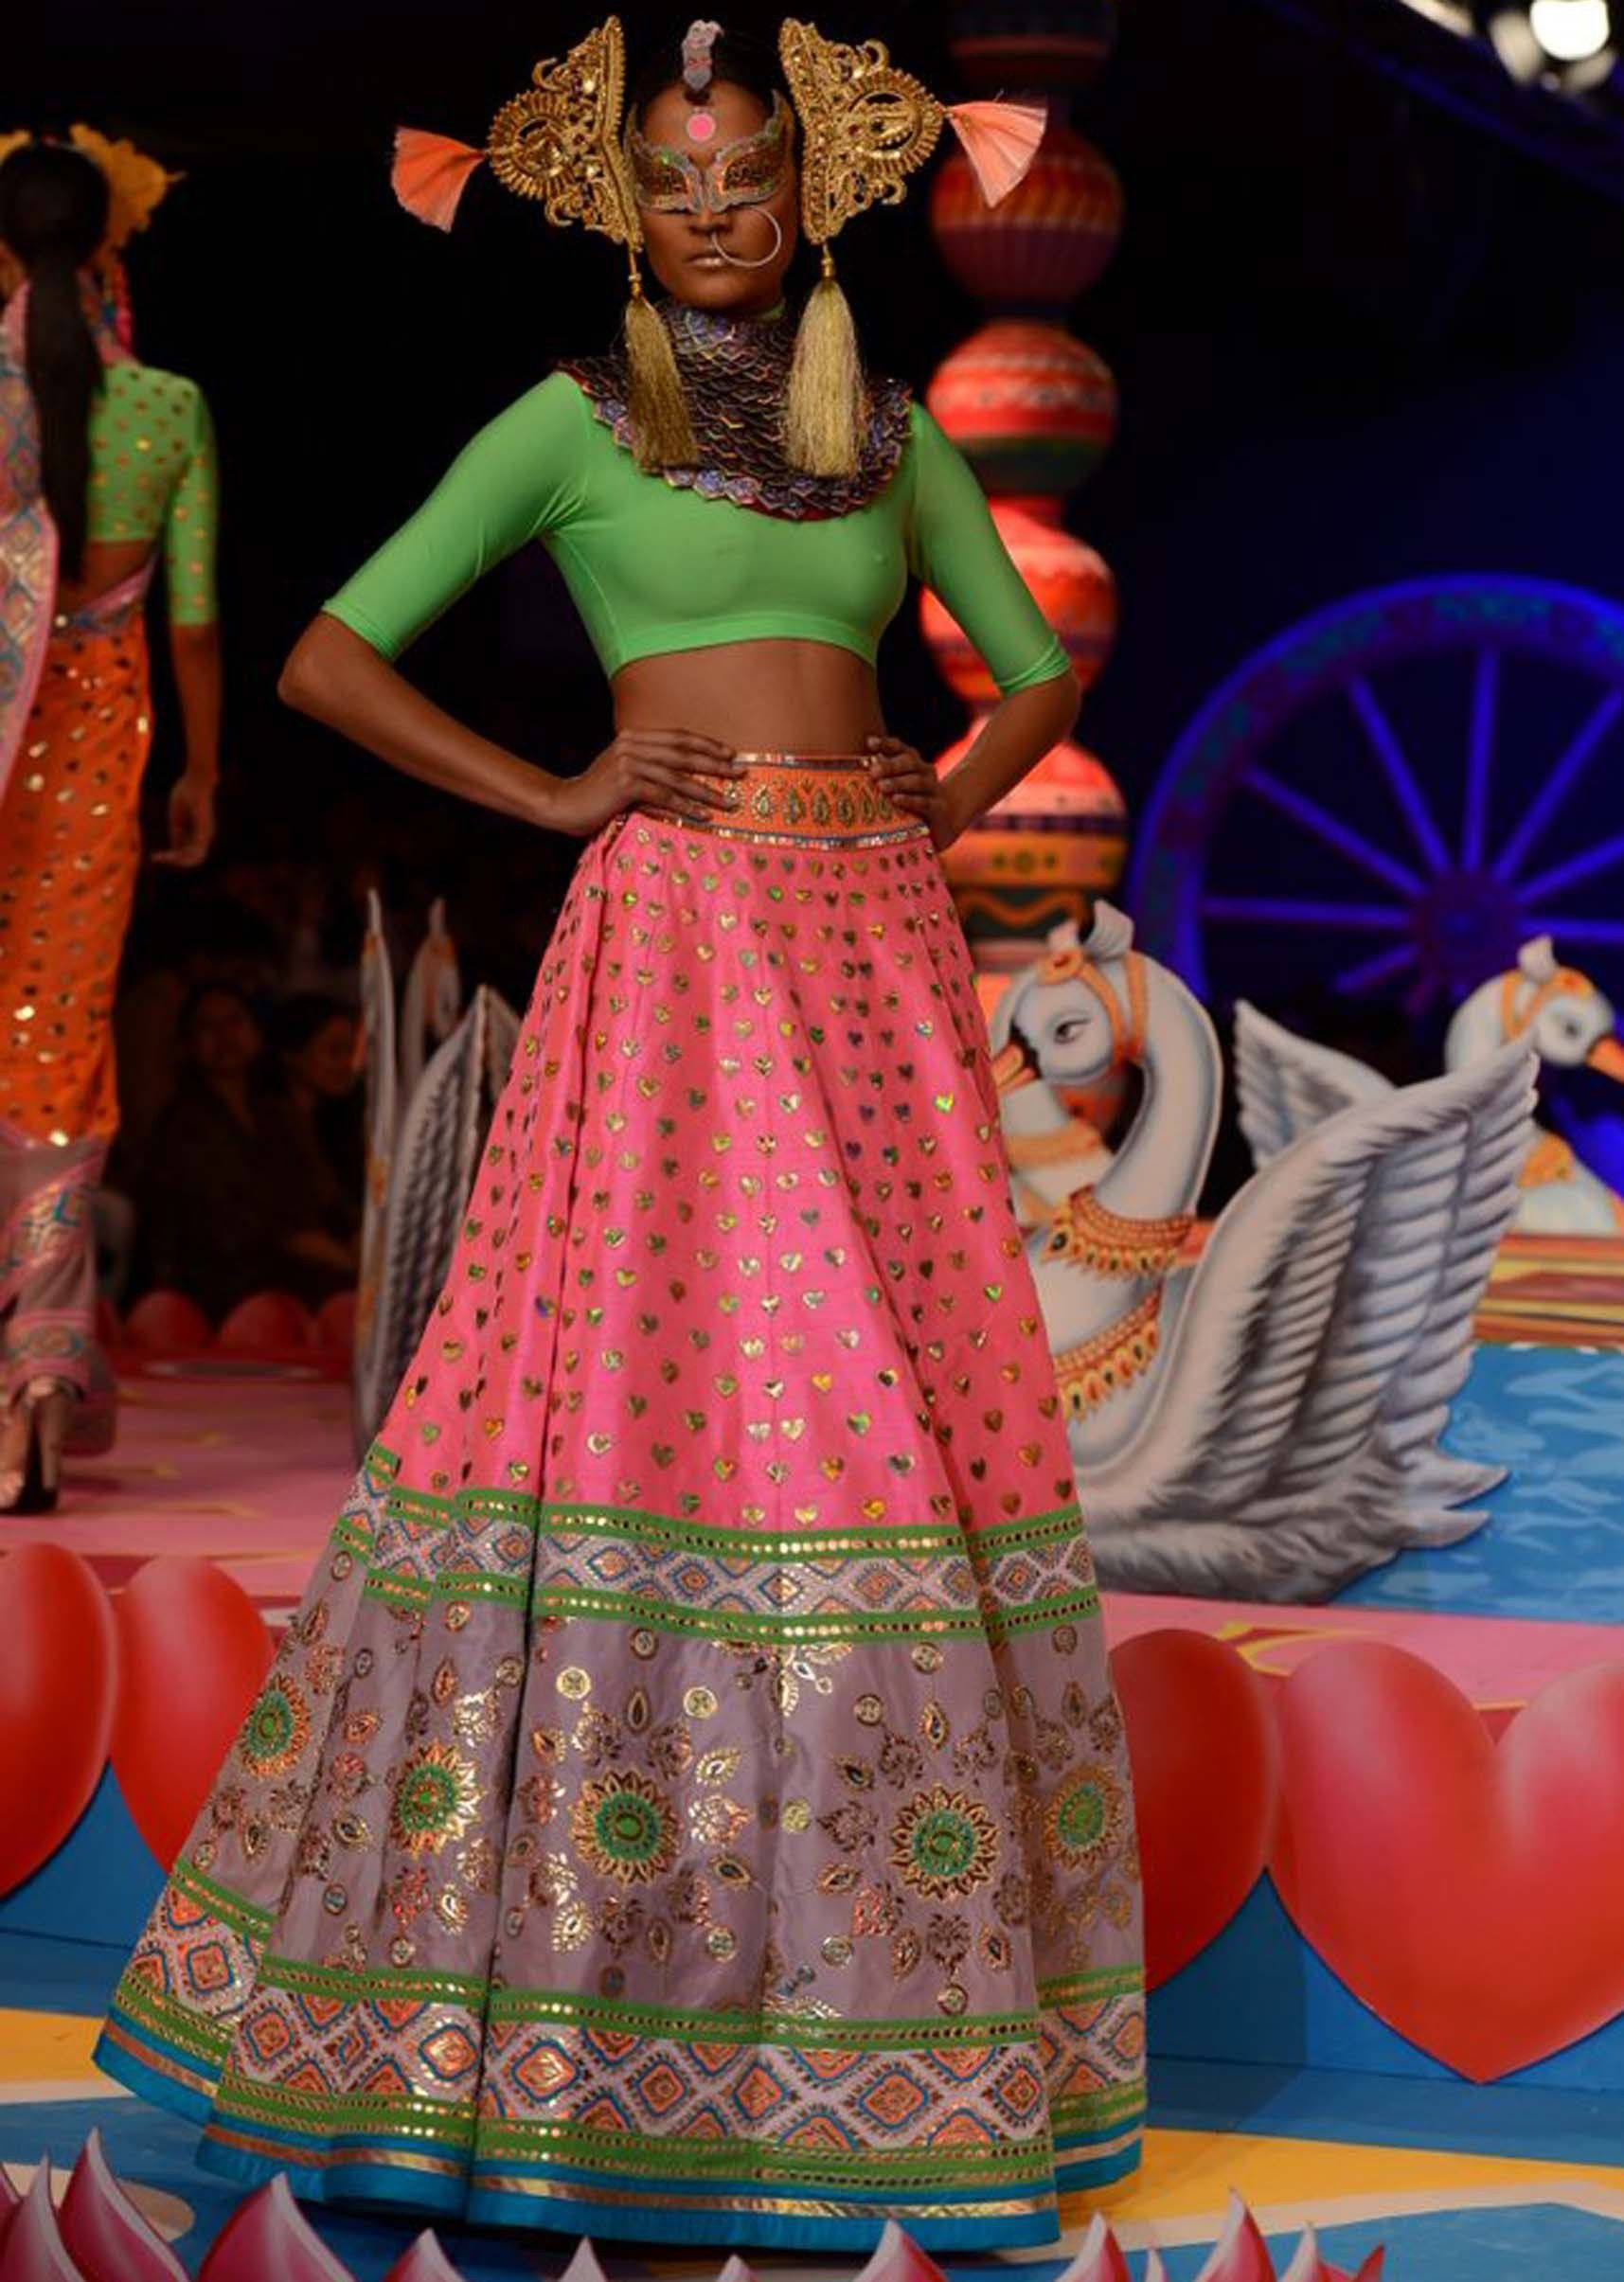 Manish Arora collection at the PCJ Delhi Couture week 2013 ...